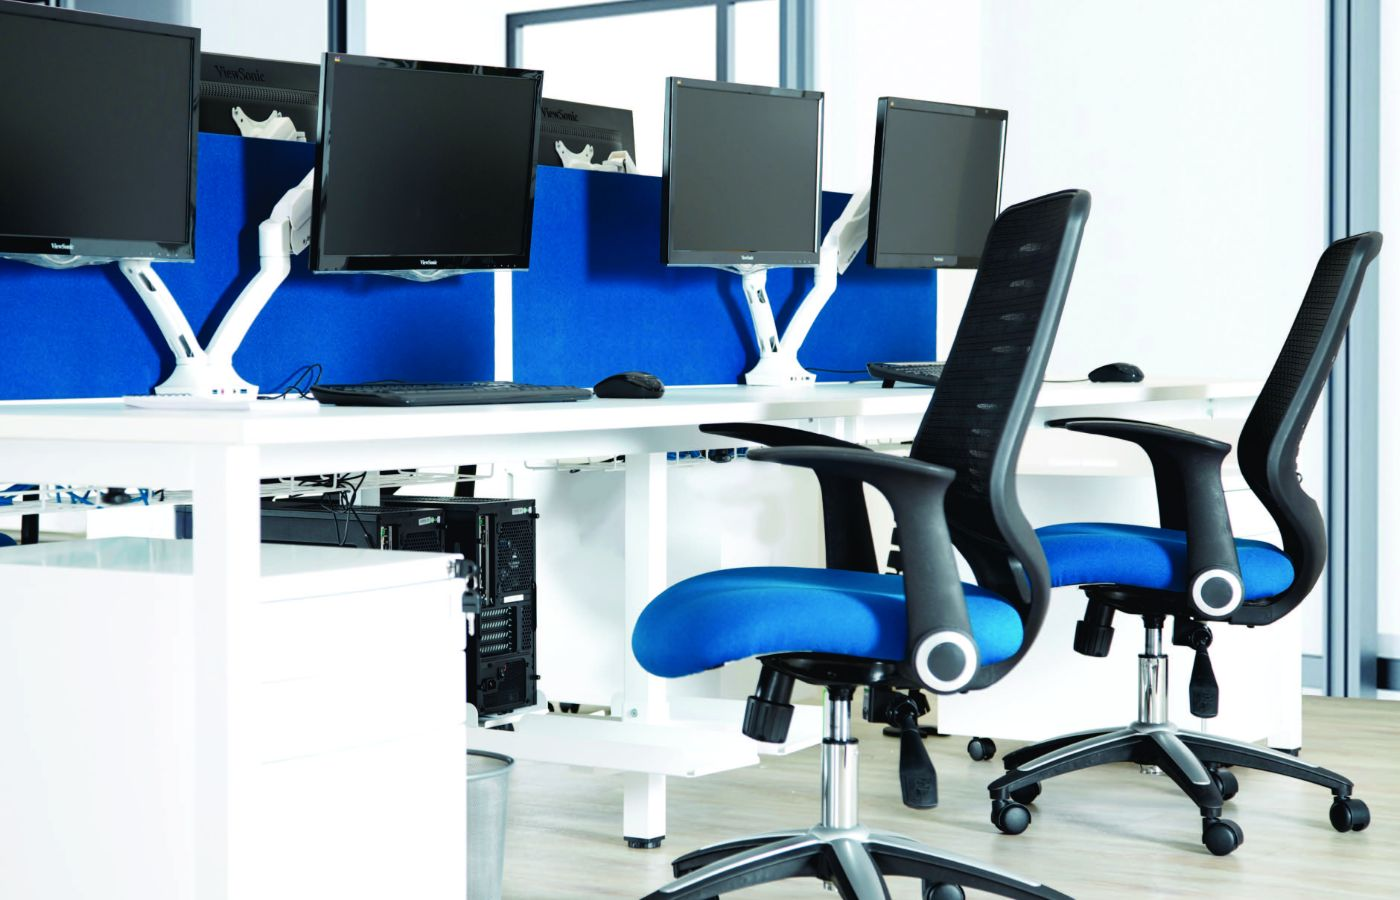 blue office chairs with floating monitors